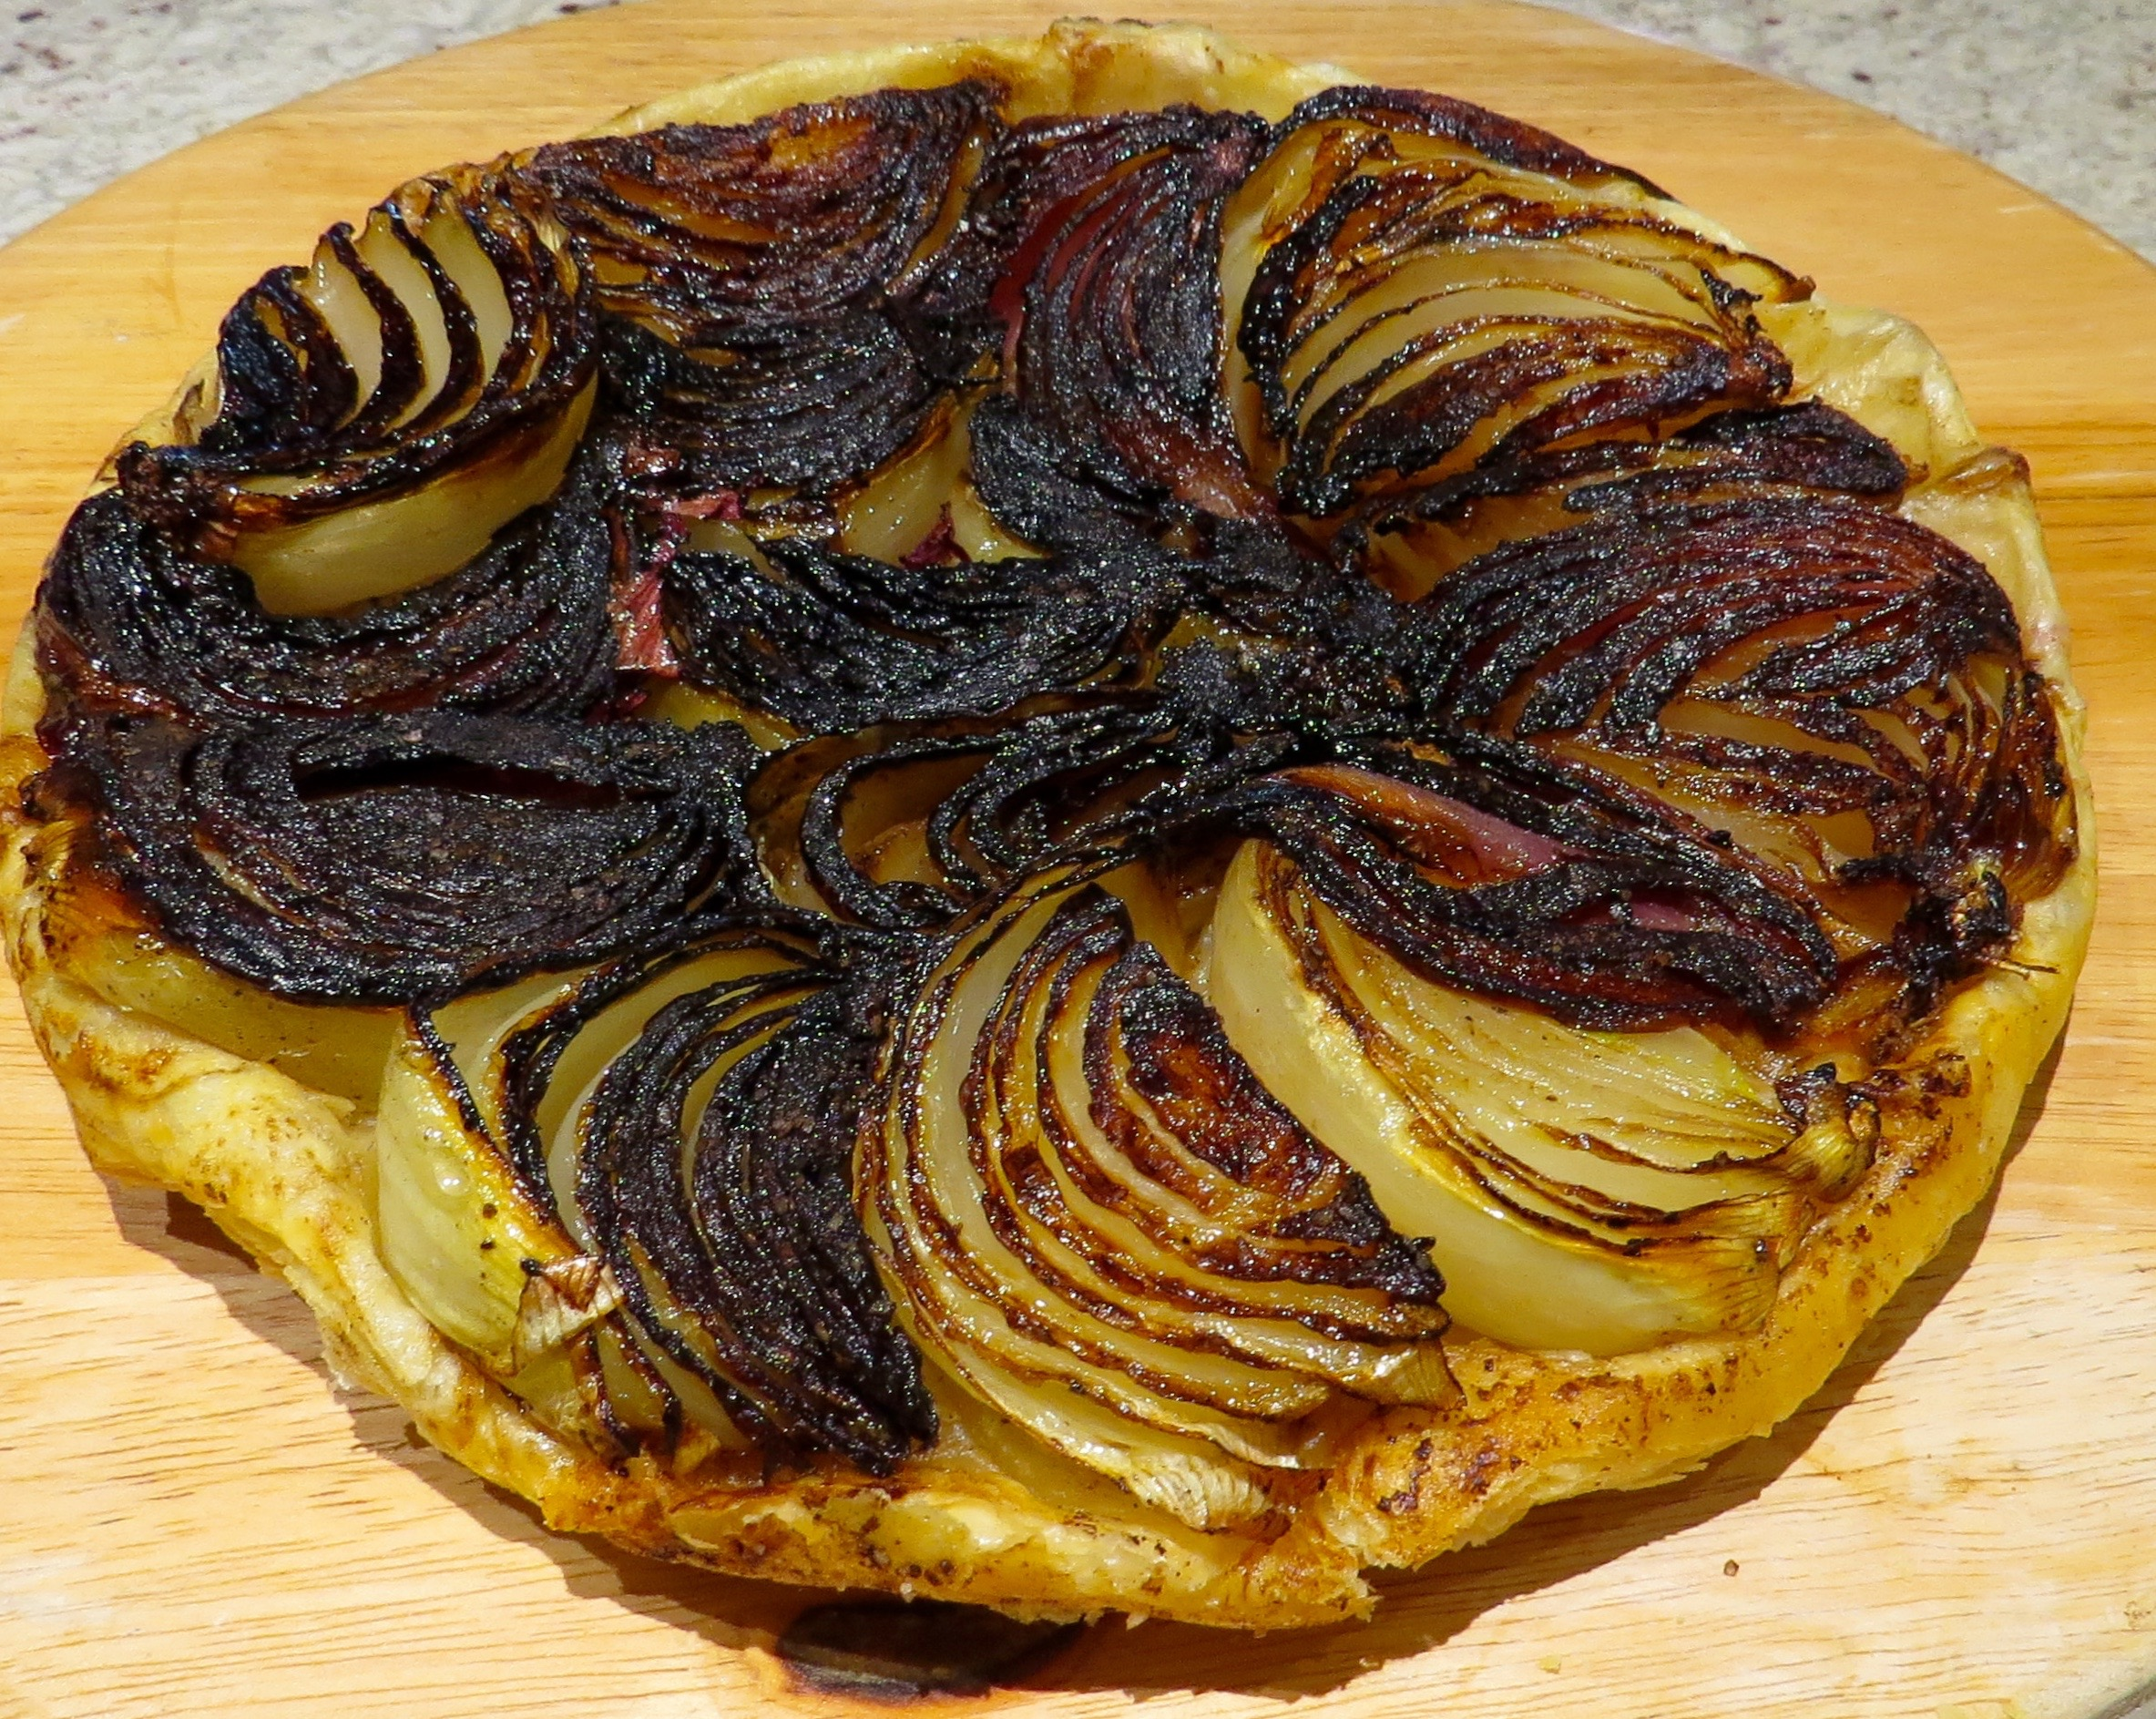 Upside-down Onion Tart laced with Balsamic Vinegar,